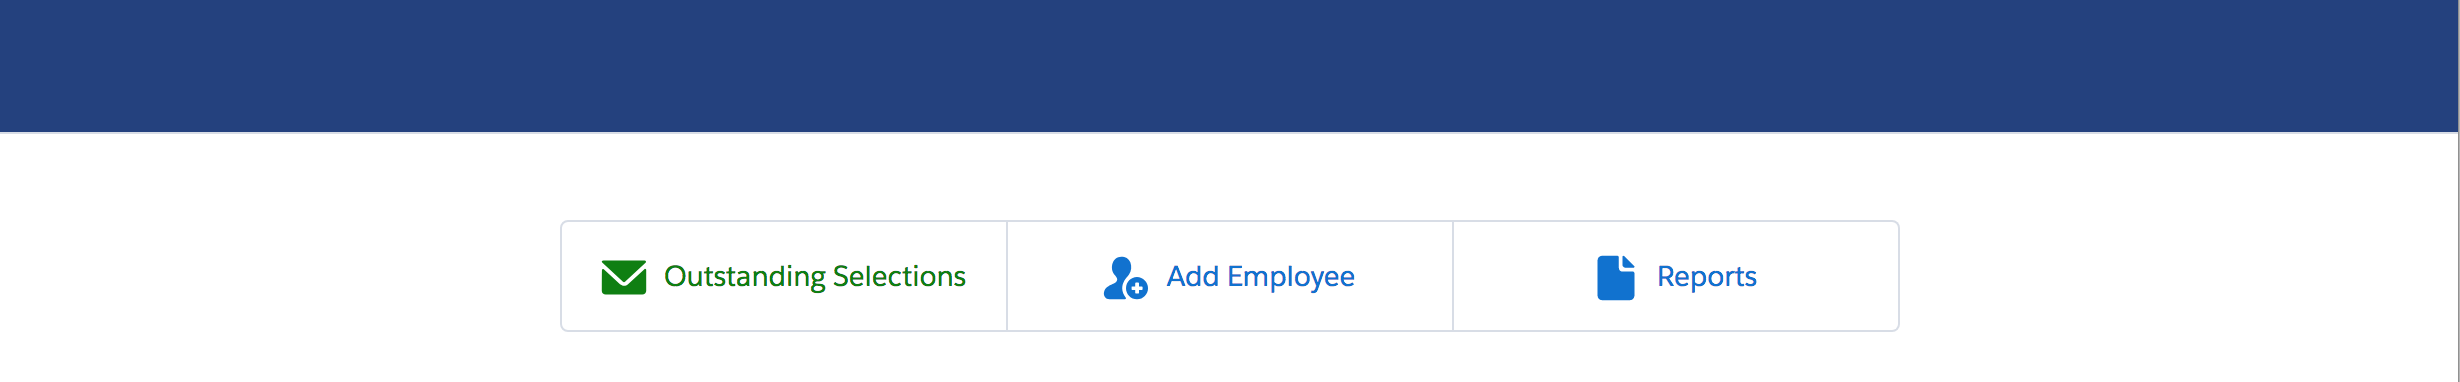 Screen_Shot_2018-10-29_at_11.51.01_AM.png